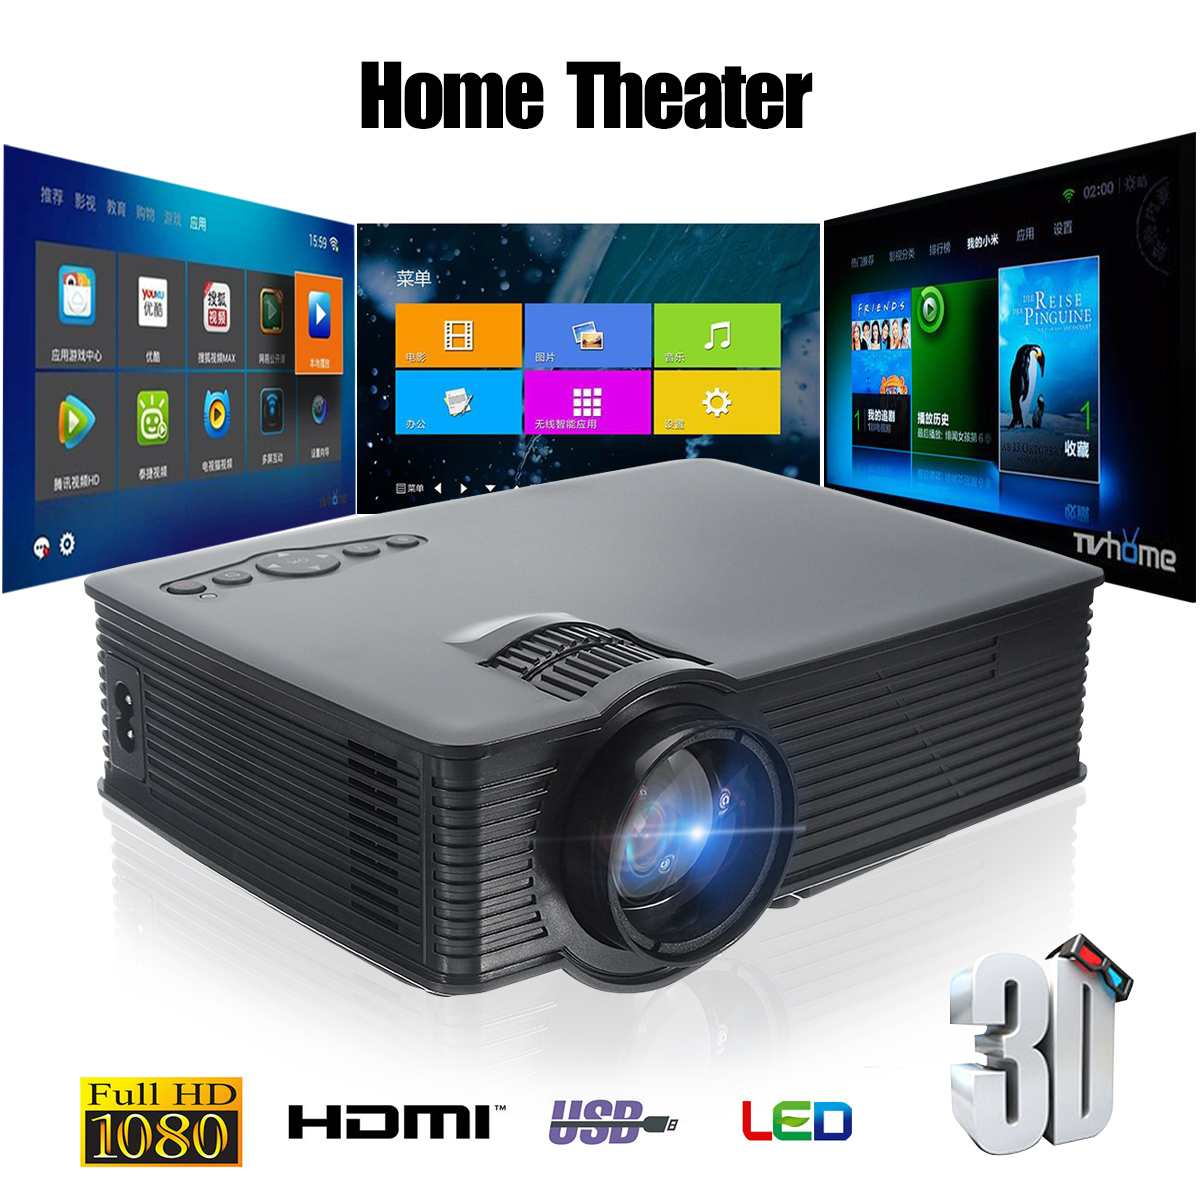 Portable 3000 Lumens HD 1080P 3D Multimedia Projector LED Home Theater HDMI USB Home Theatre System